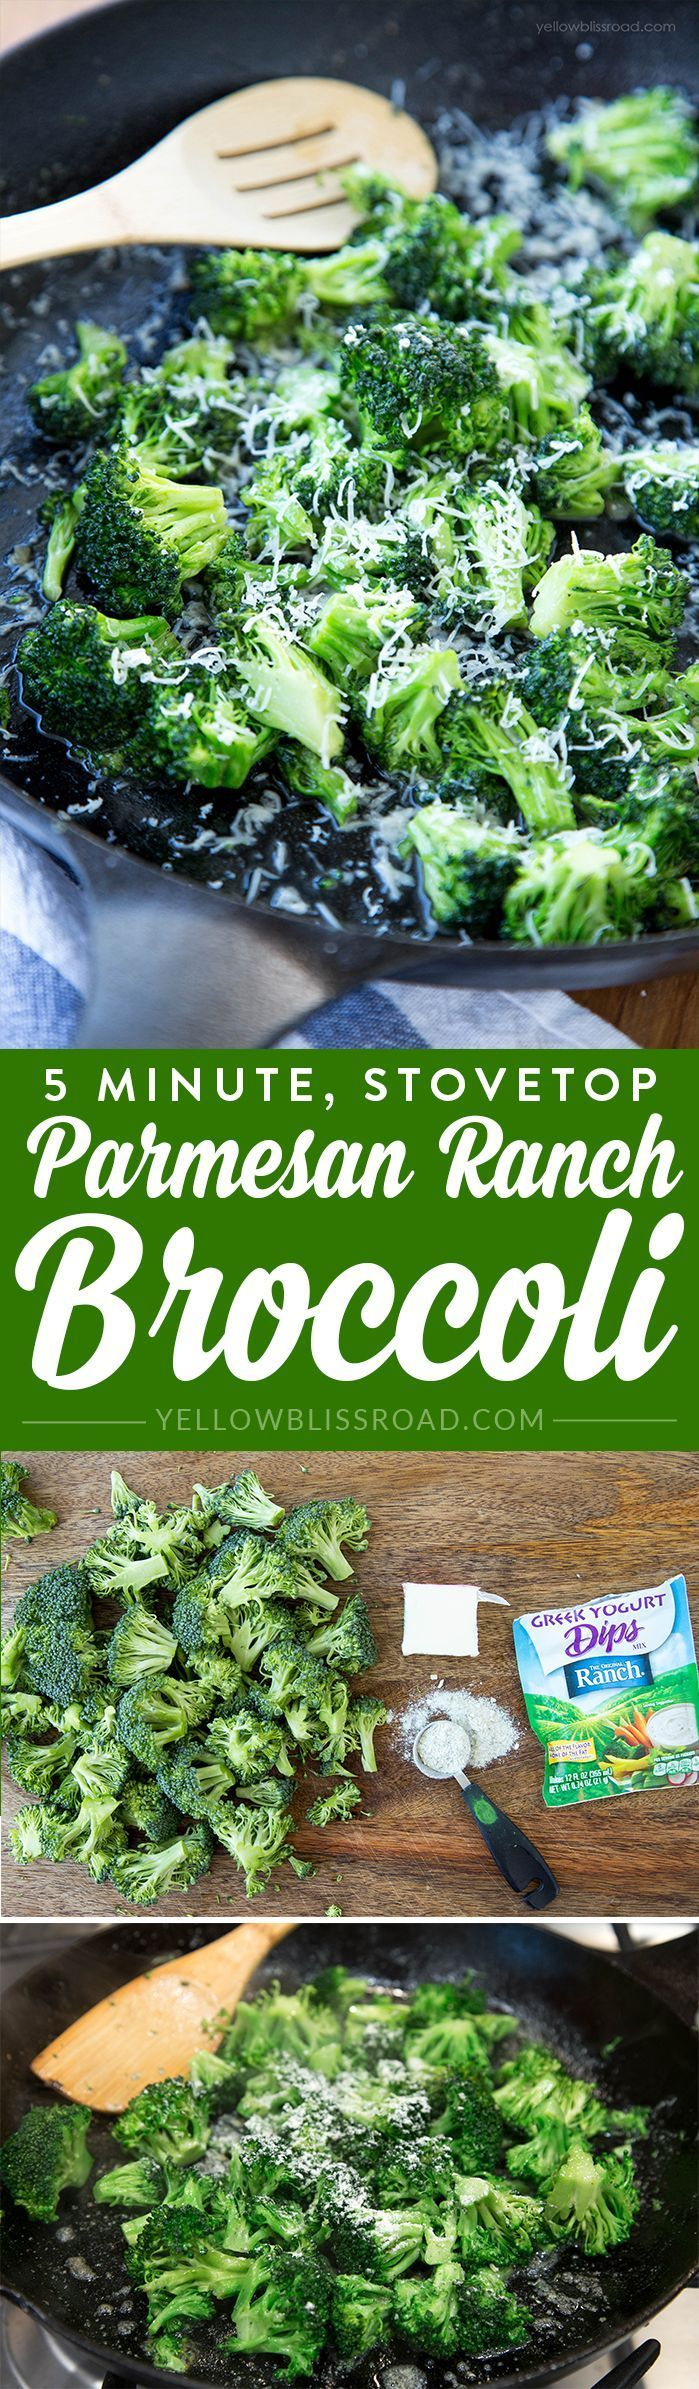 5 Minutes Stovetop Ranch Parmesan Broccoli Recipe | Yellow Bliss Road